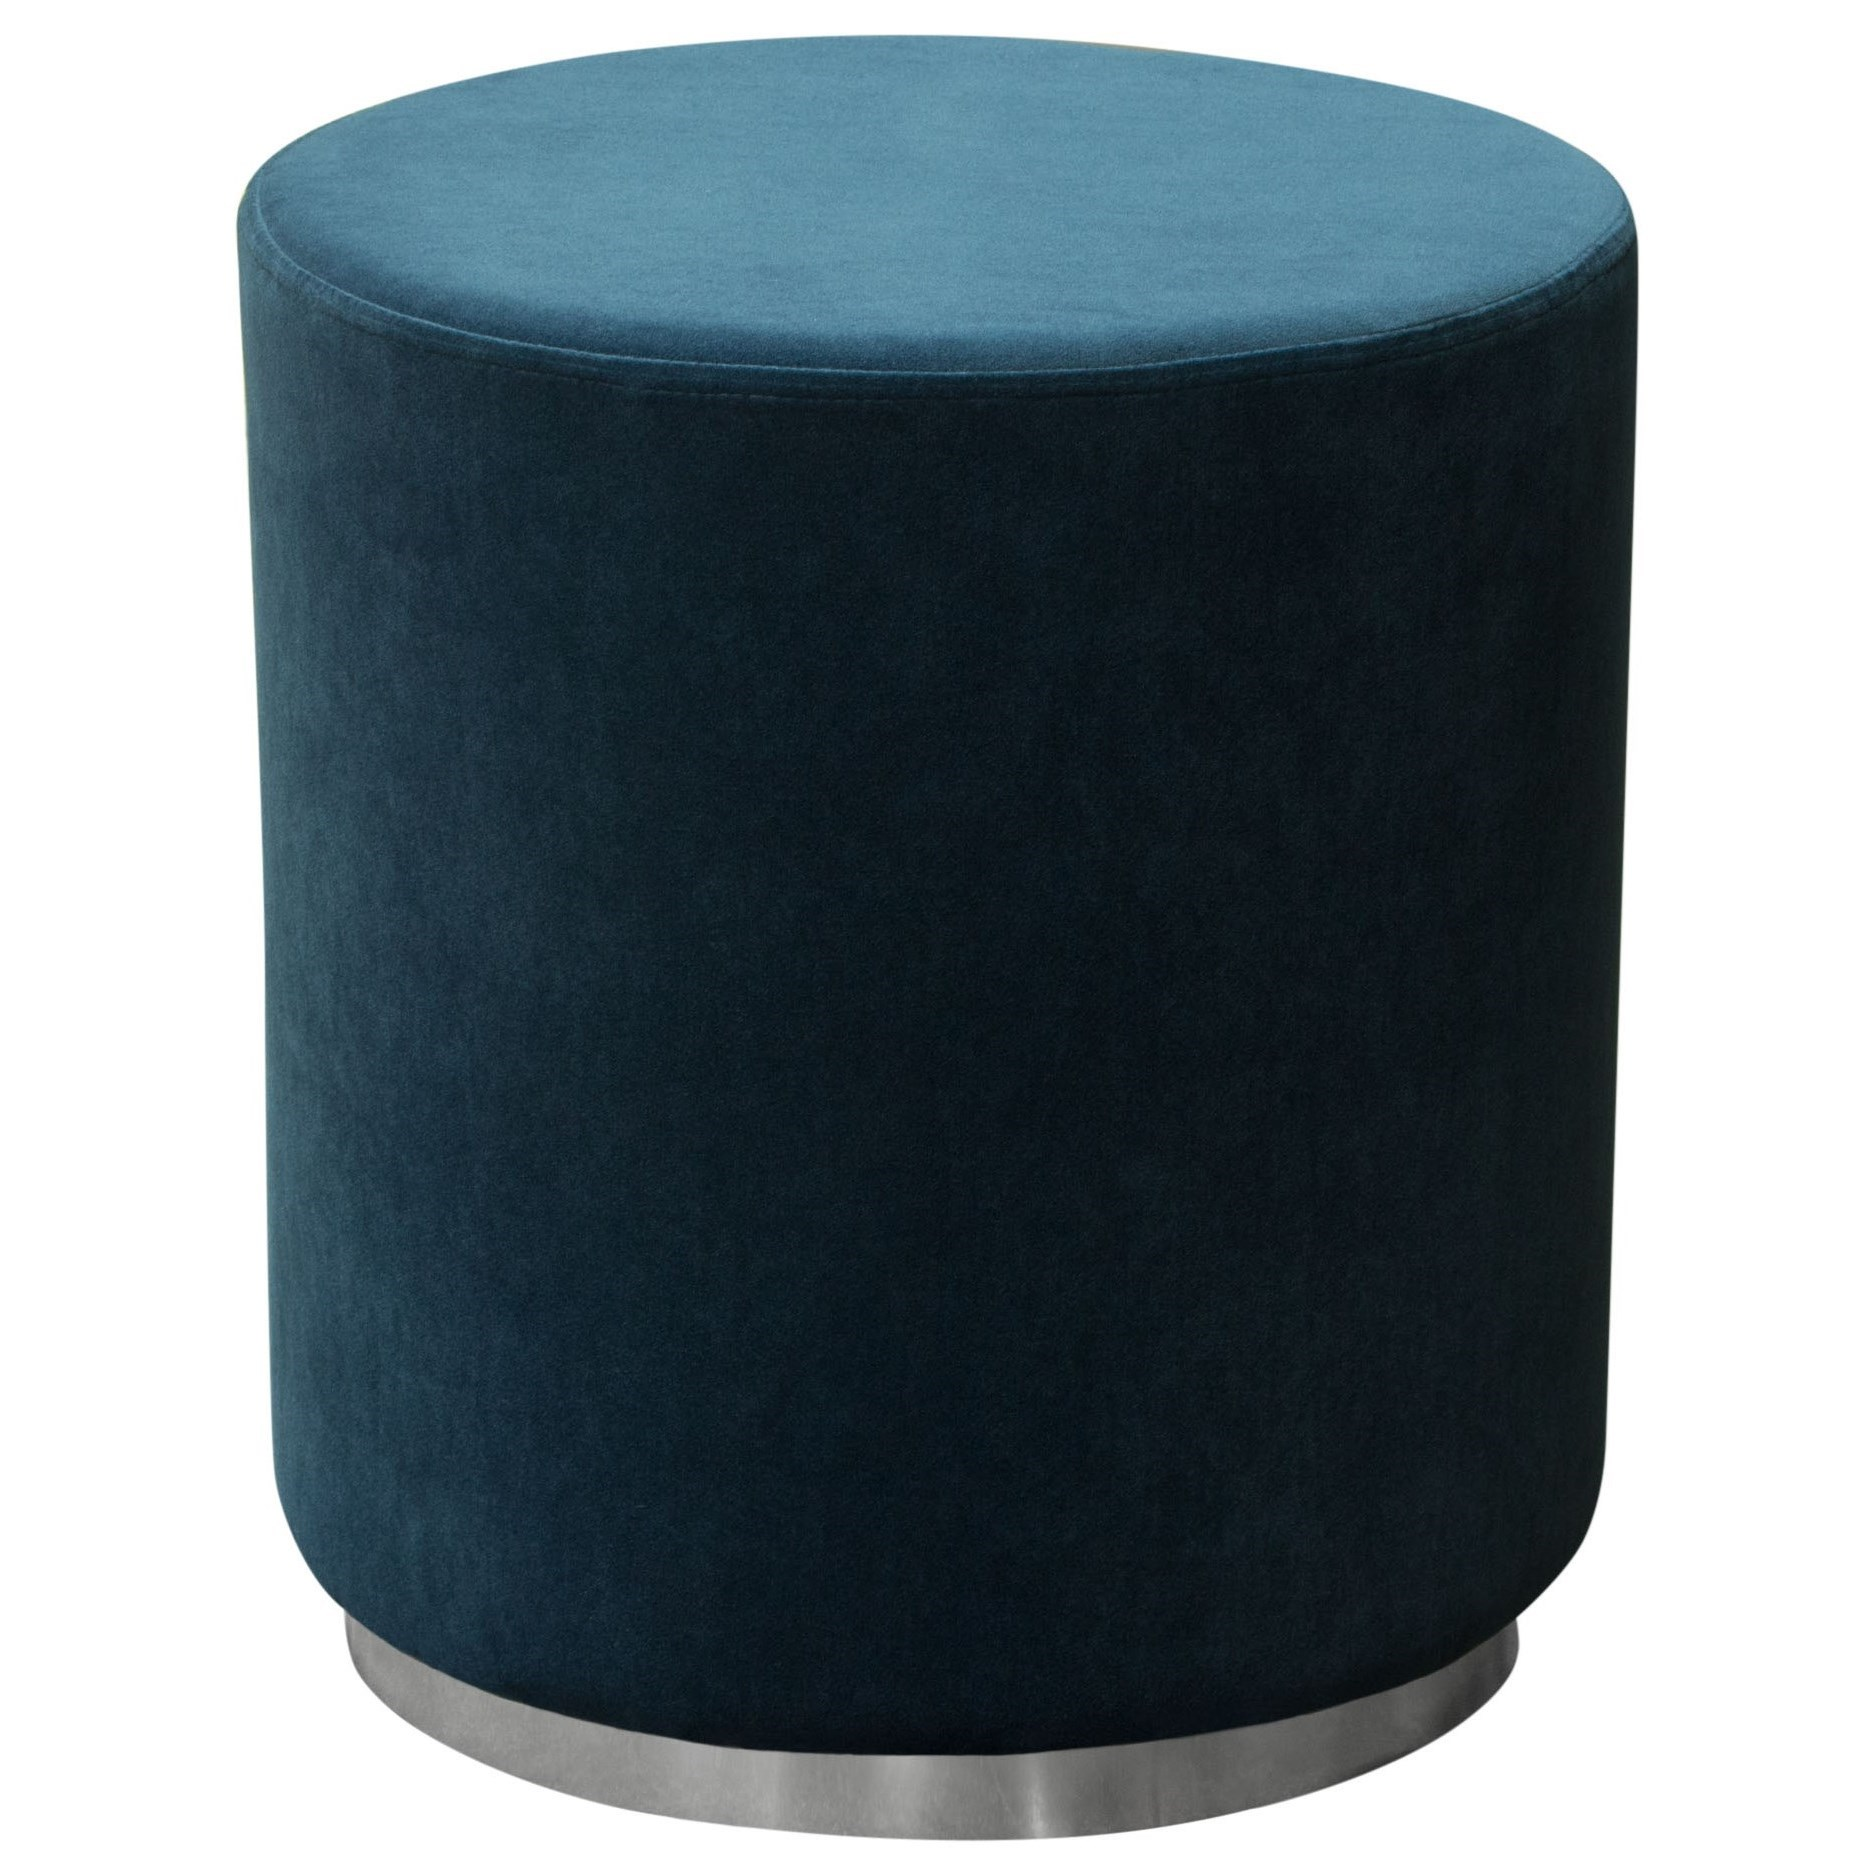 Sorbet Accent Ottoman by Diamond Sofa at HomeWorld Furniture